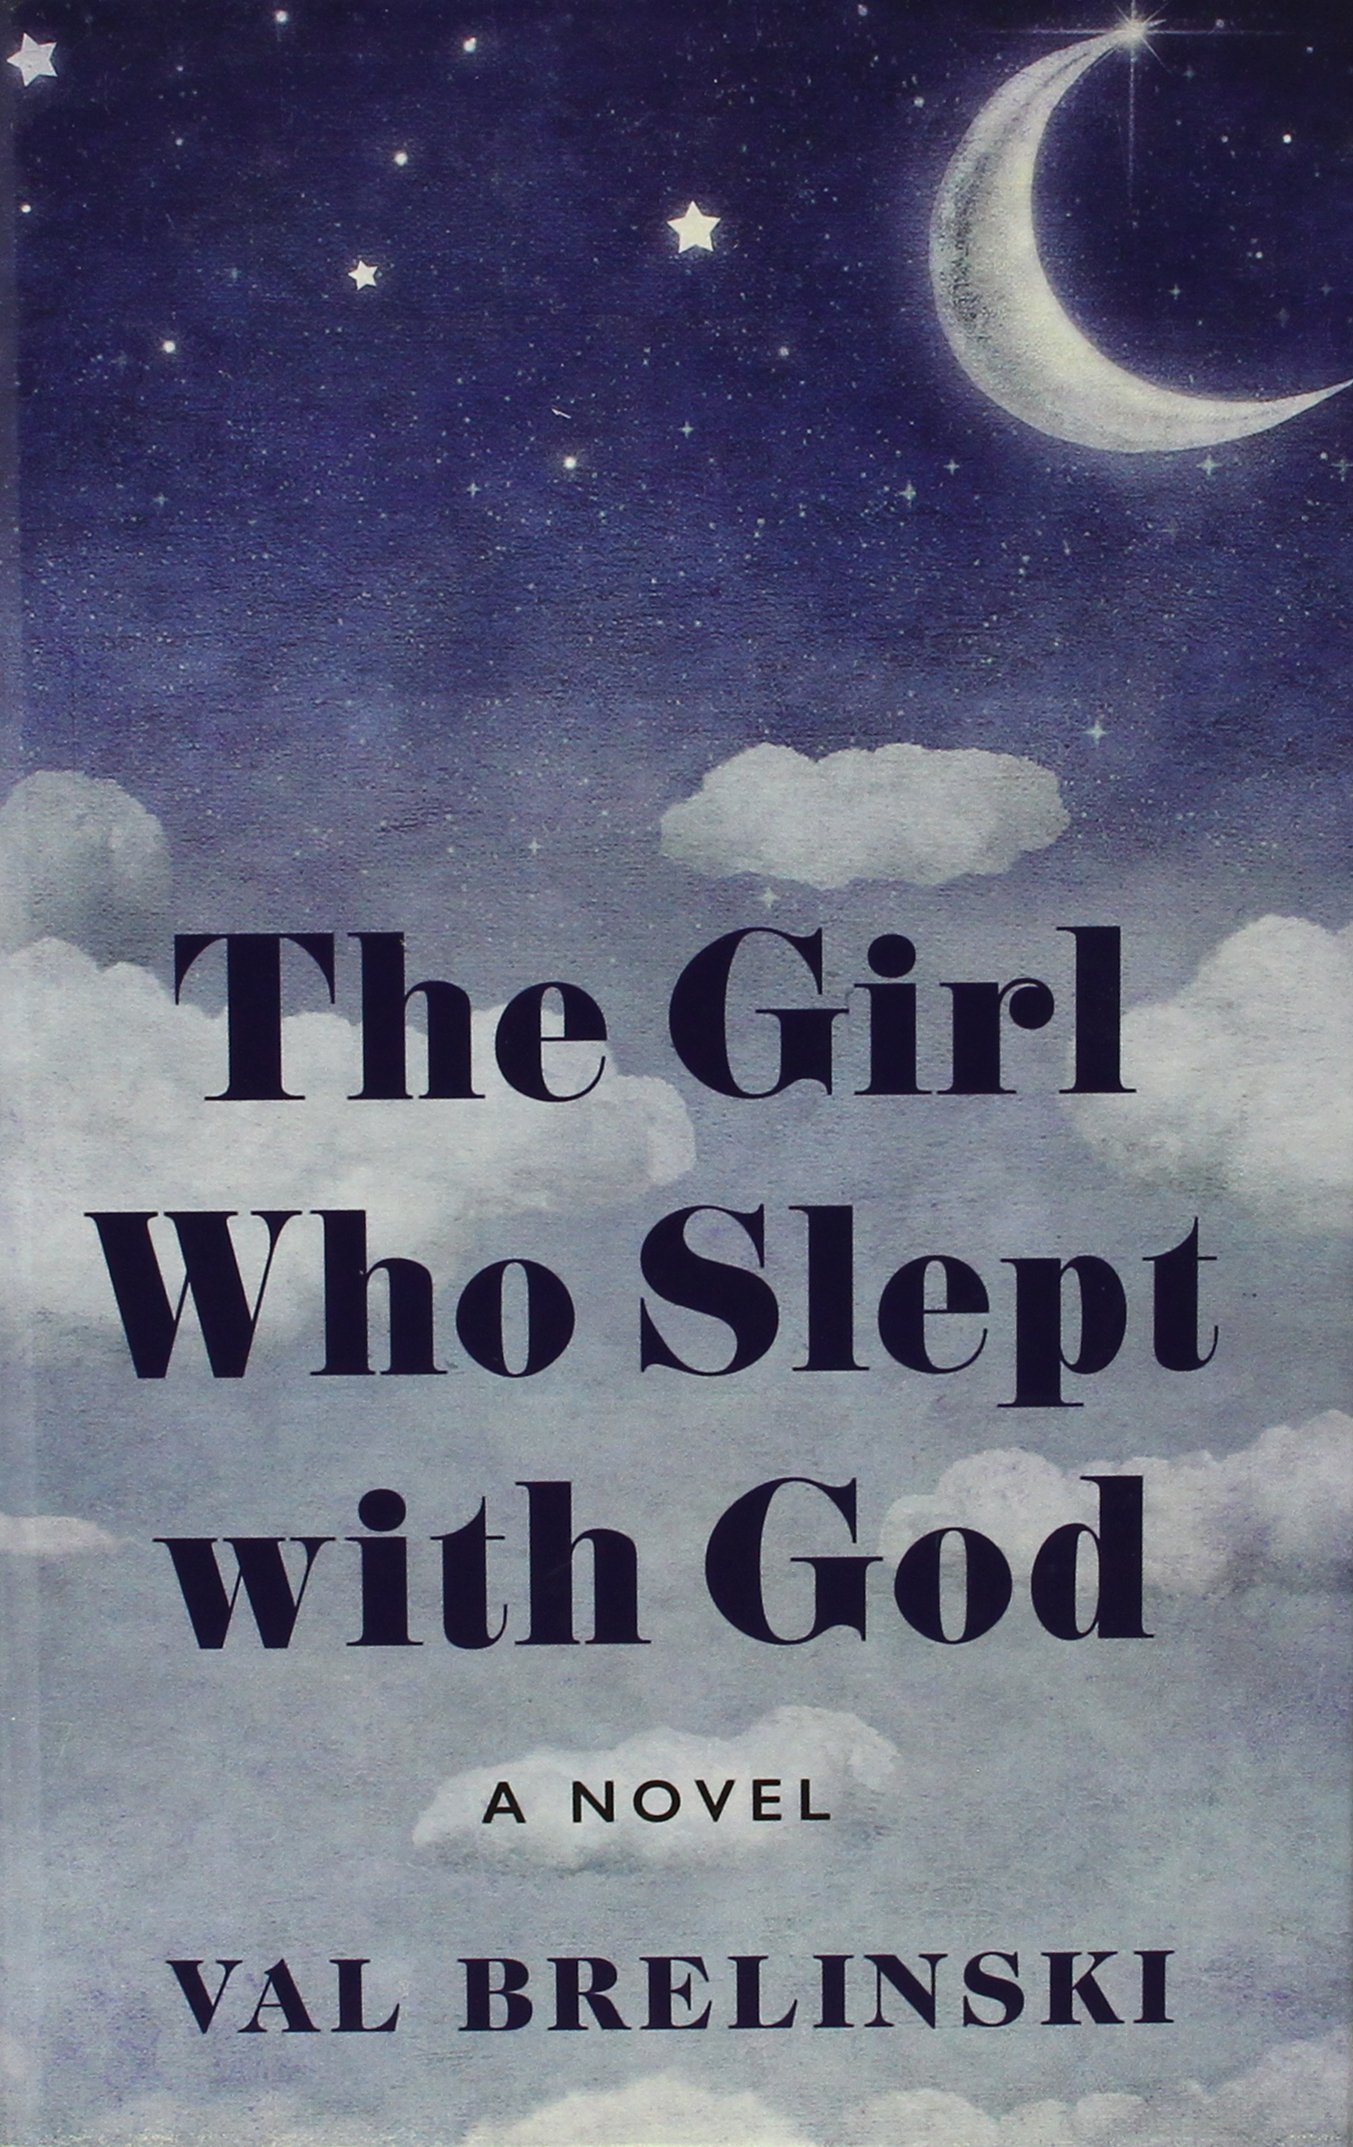 Download The Girl Who Slept With God (Thorndike Press large print core) PDF